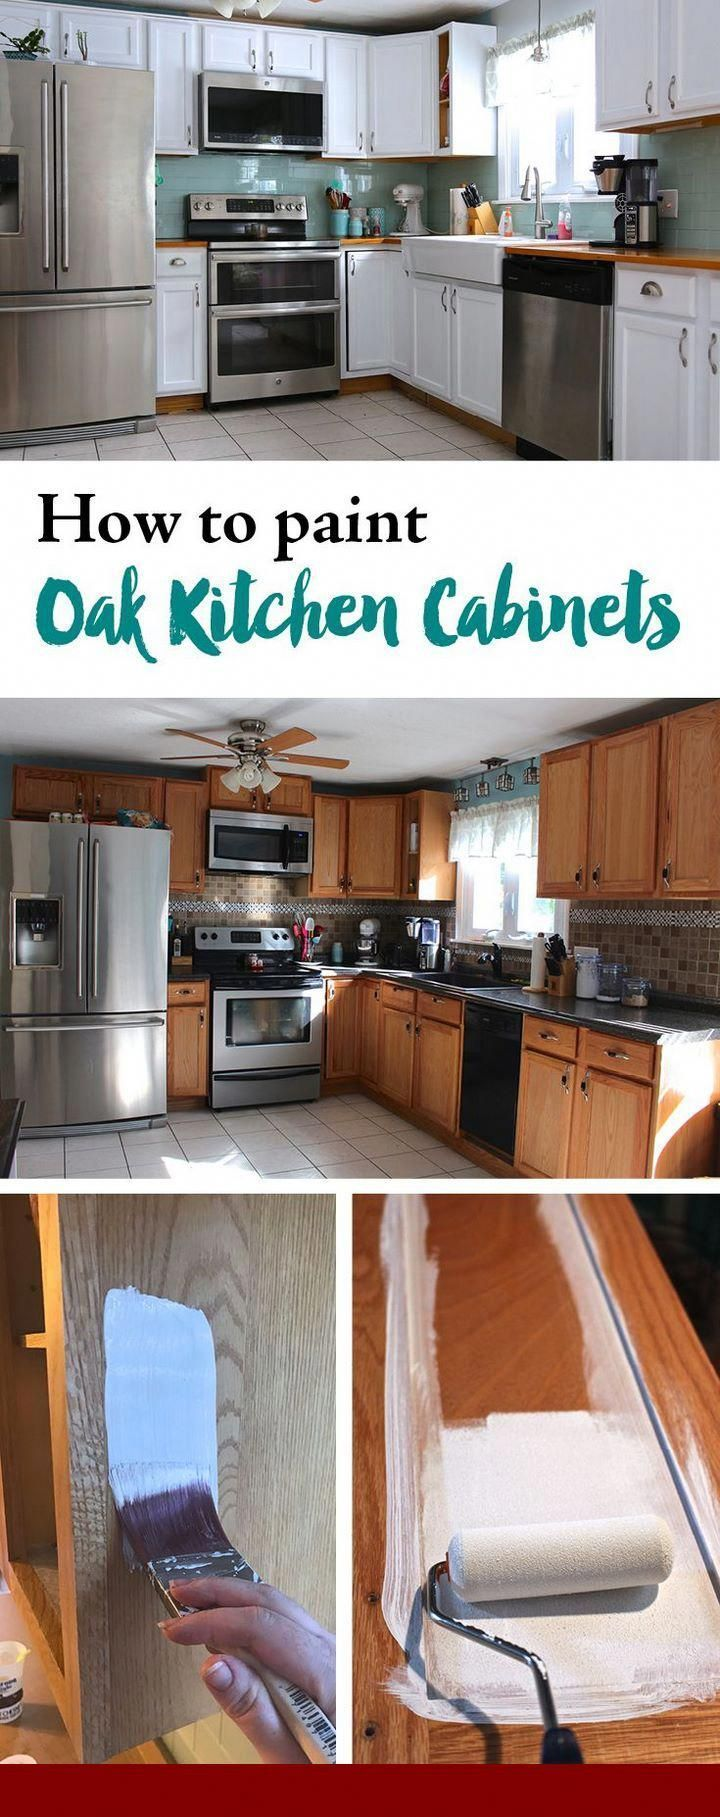 4 myths of - honey oak cabinets with grey paint.  #oakkitchencabinets #kitchenisland #honeyoakcabinets 4 myths of - honey oak cabinets with grey paint.  #oakkitchencabinets #kitchenisland #honeyoakcabinets 4 myths of - honey oak cabinets with grey paint.  #oakkitchencabinets #kitchenisland #honeyoakcabinets 4 myths of - honey oak cabinets with grey paint.  #oakkitchencabinets #kitchenisland #honeyoakcabinets 4 myths of - honey oak cabinets with grey paint.  #oakkitchencabinets #kitchenisland #ho #honeyoakcabinets